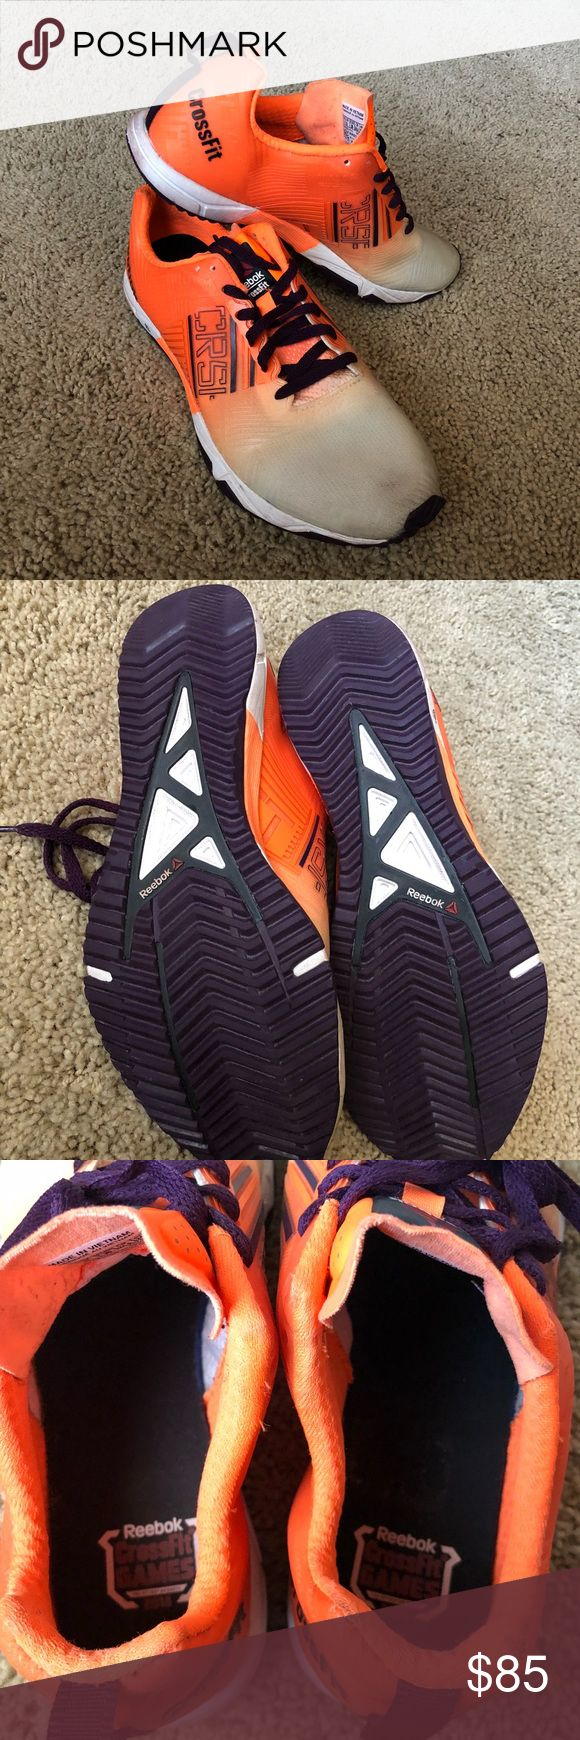 Reebok Crossfit Games Nano Sprint Shoe 💥SHIPS WITHIN 1-2 DAYS💥 Condition: Great, used 2x, Removed sticker on inside (right shoe) Comfort: Extremely comfortable, hugs your feet perfectly for smooth sprint or long run Reebok Shoes Sneakers